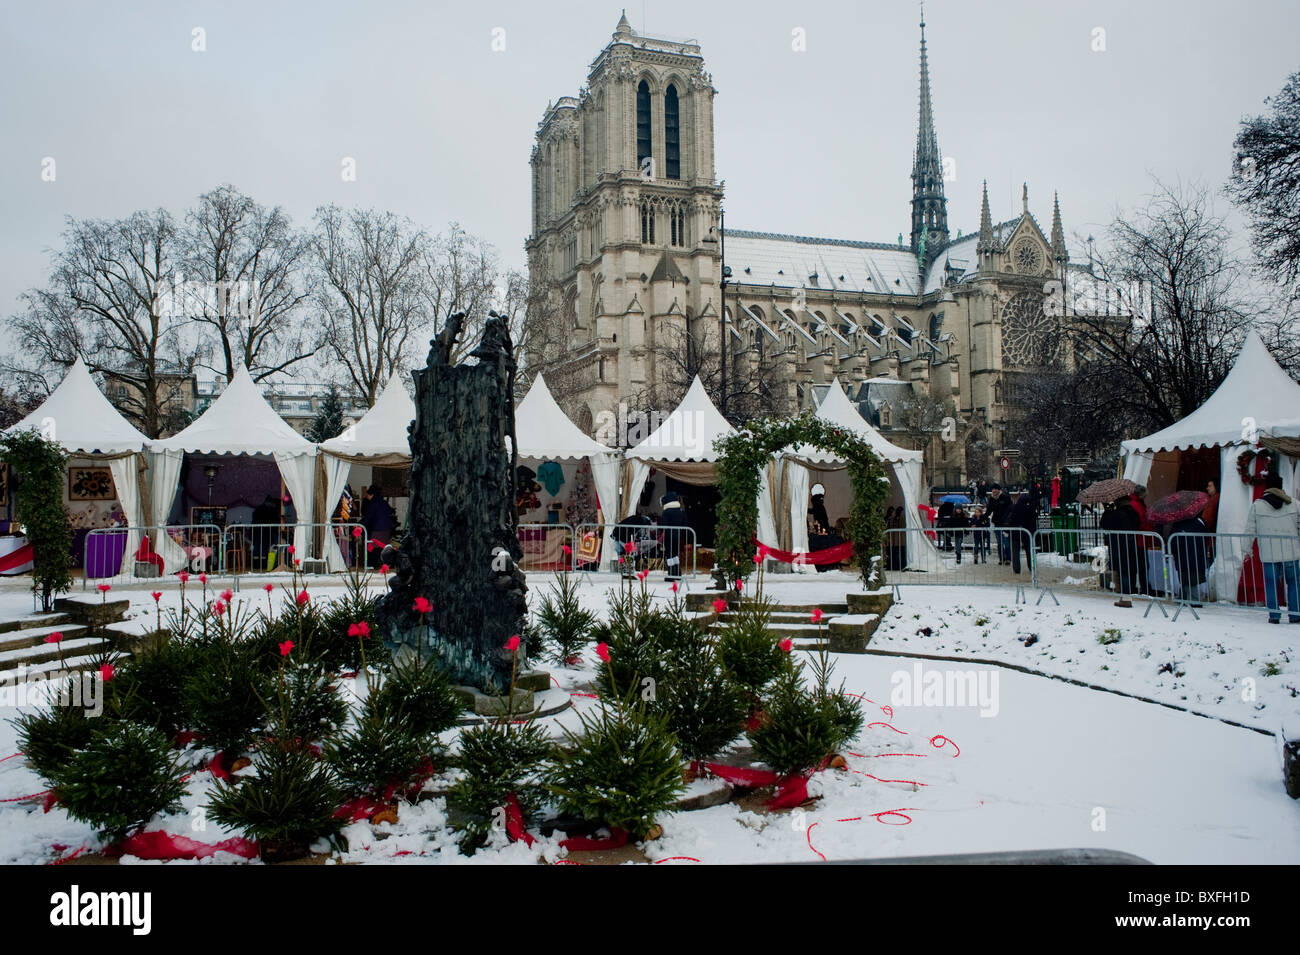 Notre Dame Cathedral Christmas Decorations Stock Photos & Notre Dame ...